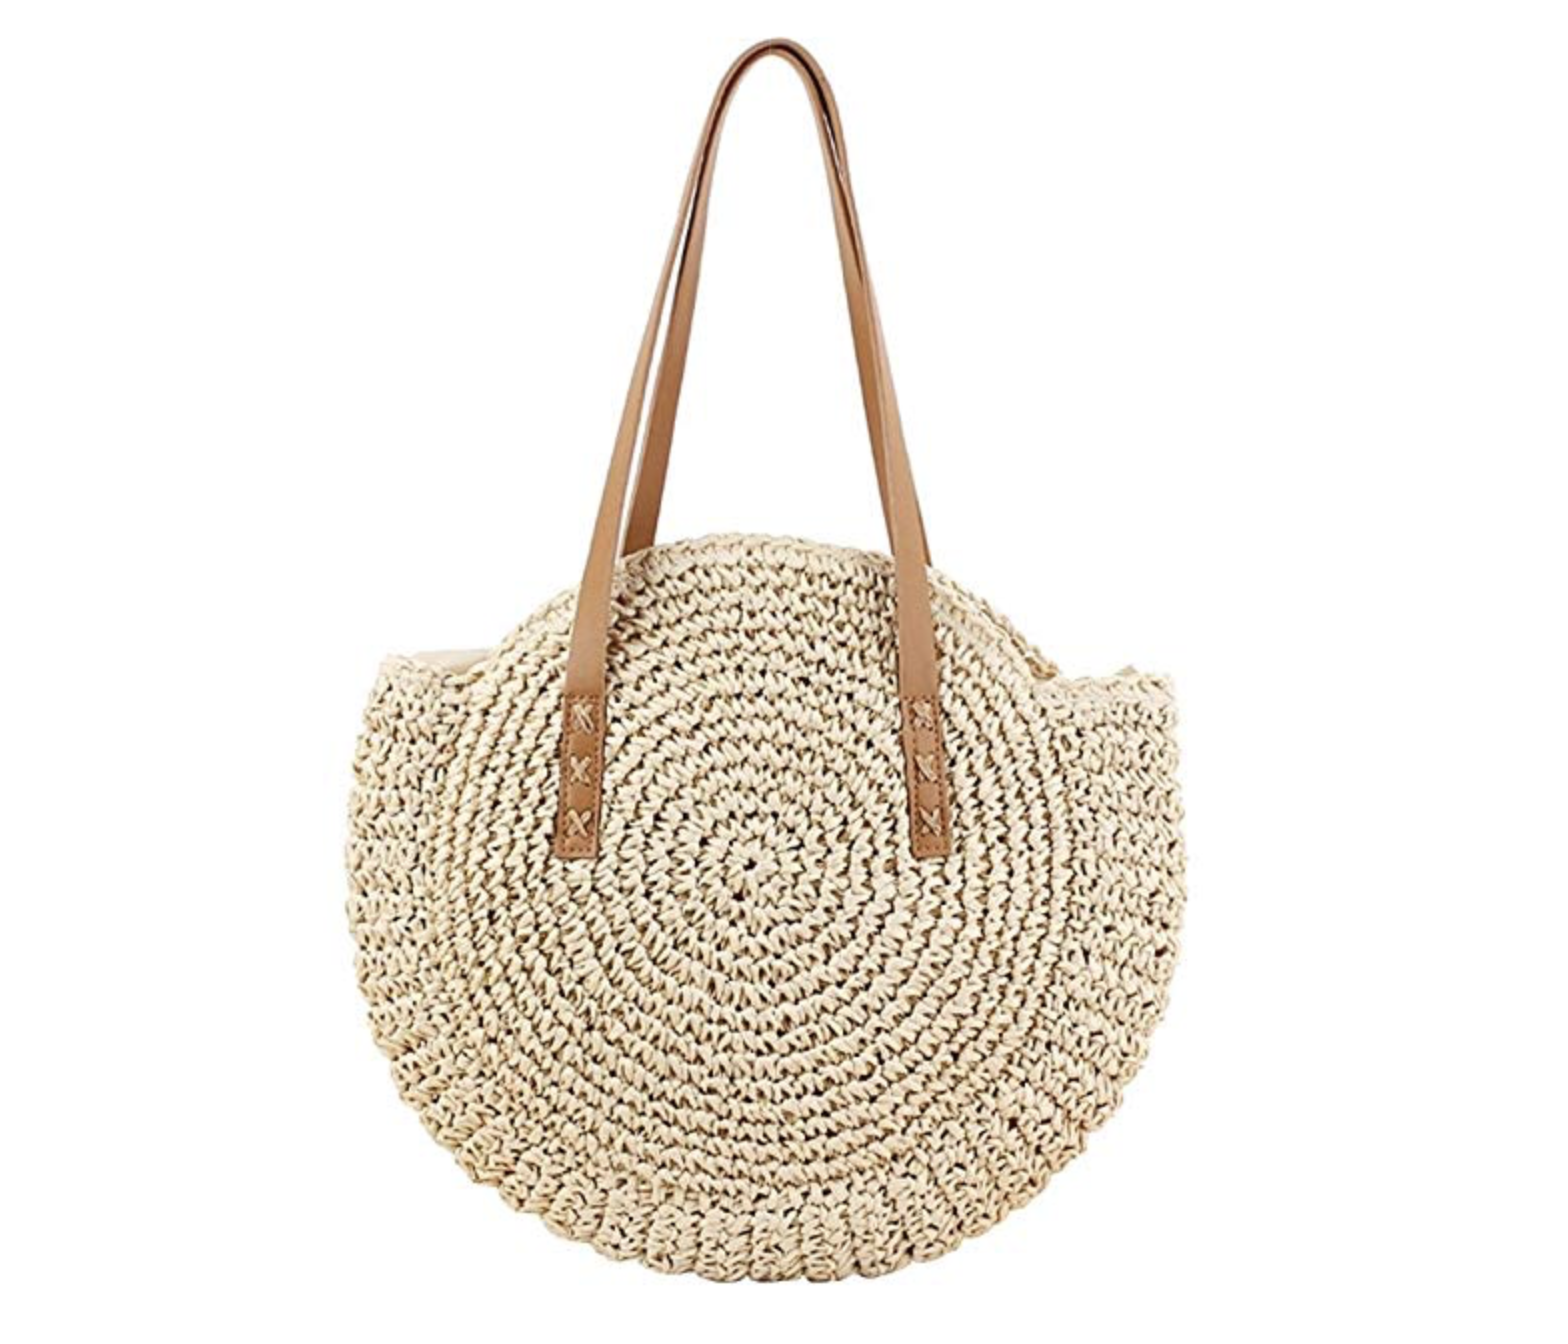 Amazon shopping ideas | Amazon sale | Amazon spring fashion | spring clothing |wicker bag | spring purse